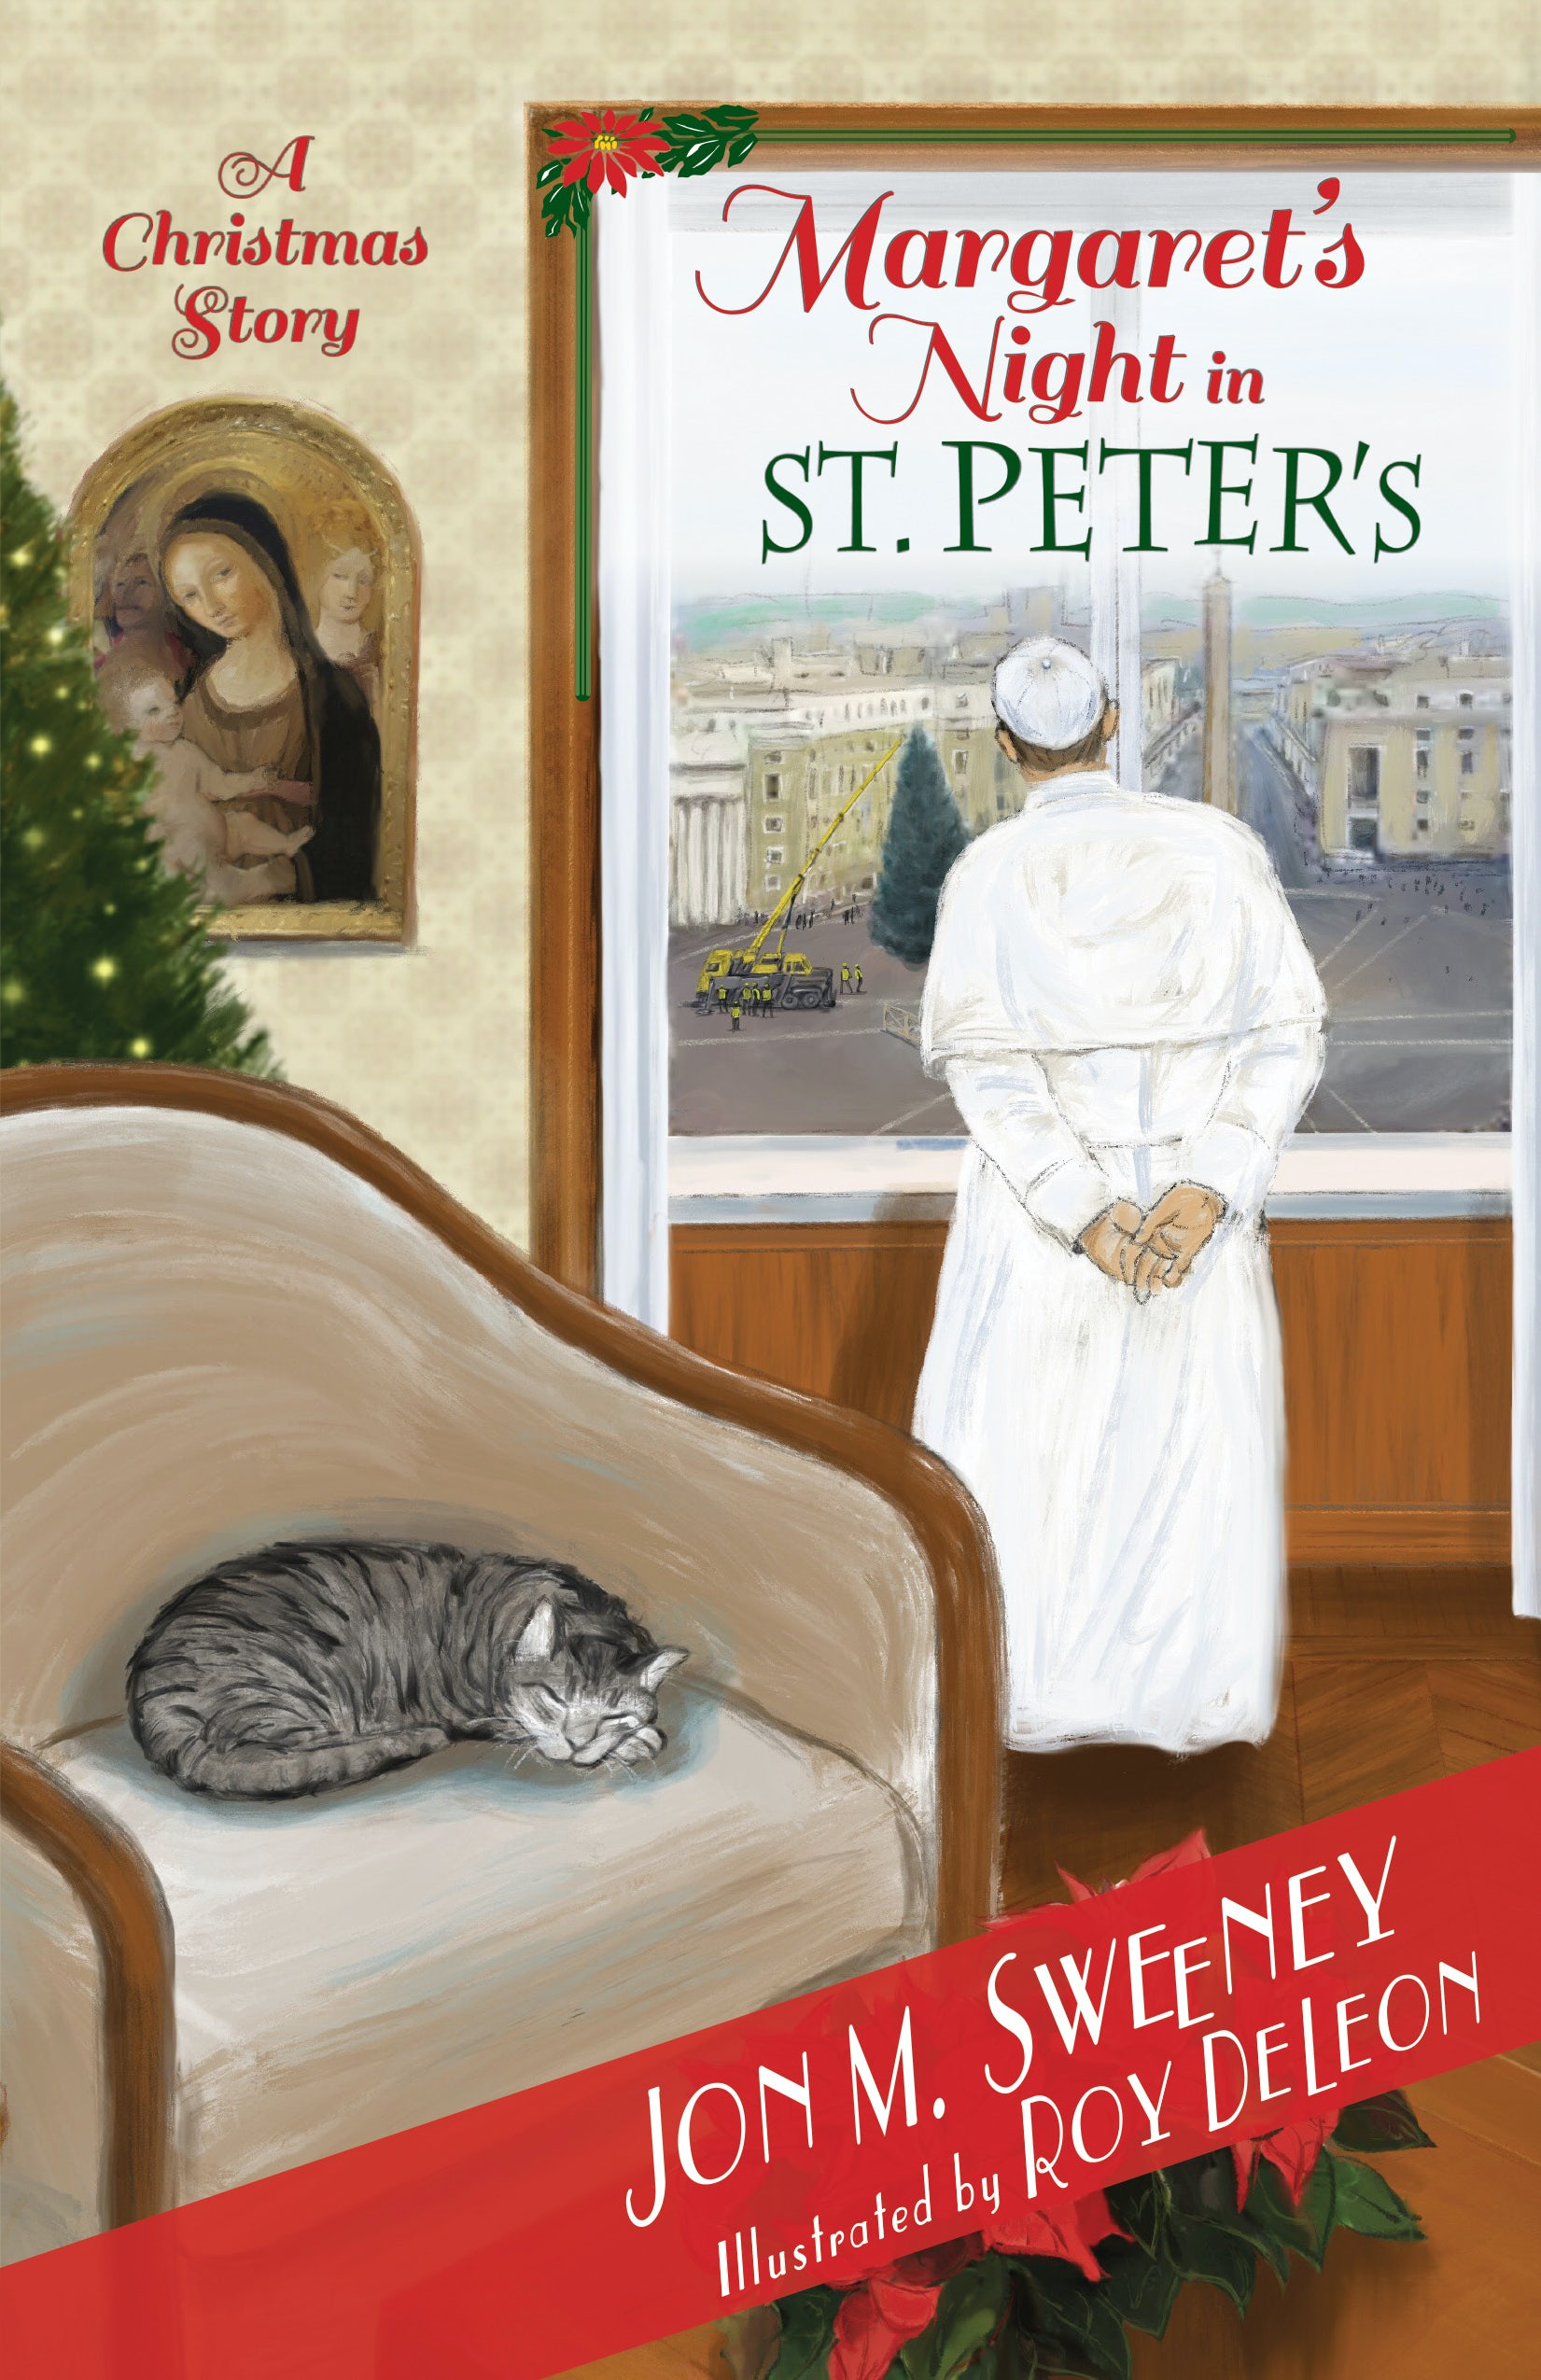 Margaret's Night in St Peter's